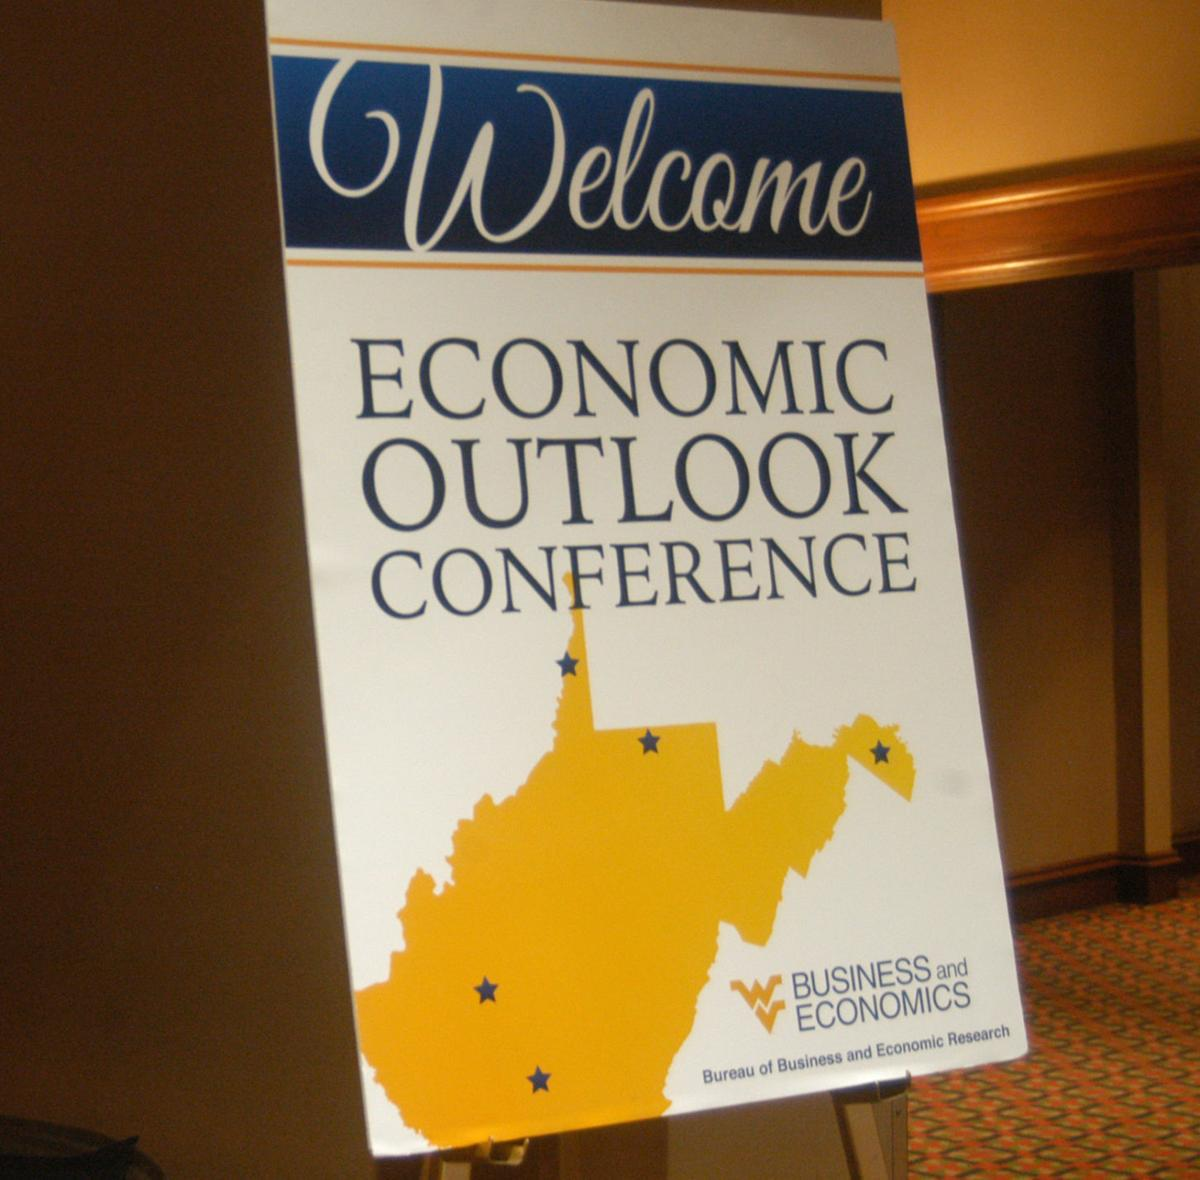 Economic Outlook Conference